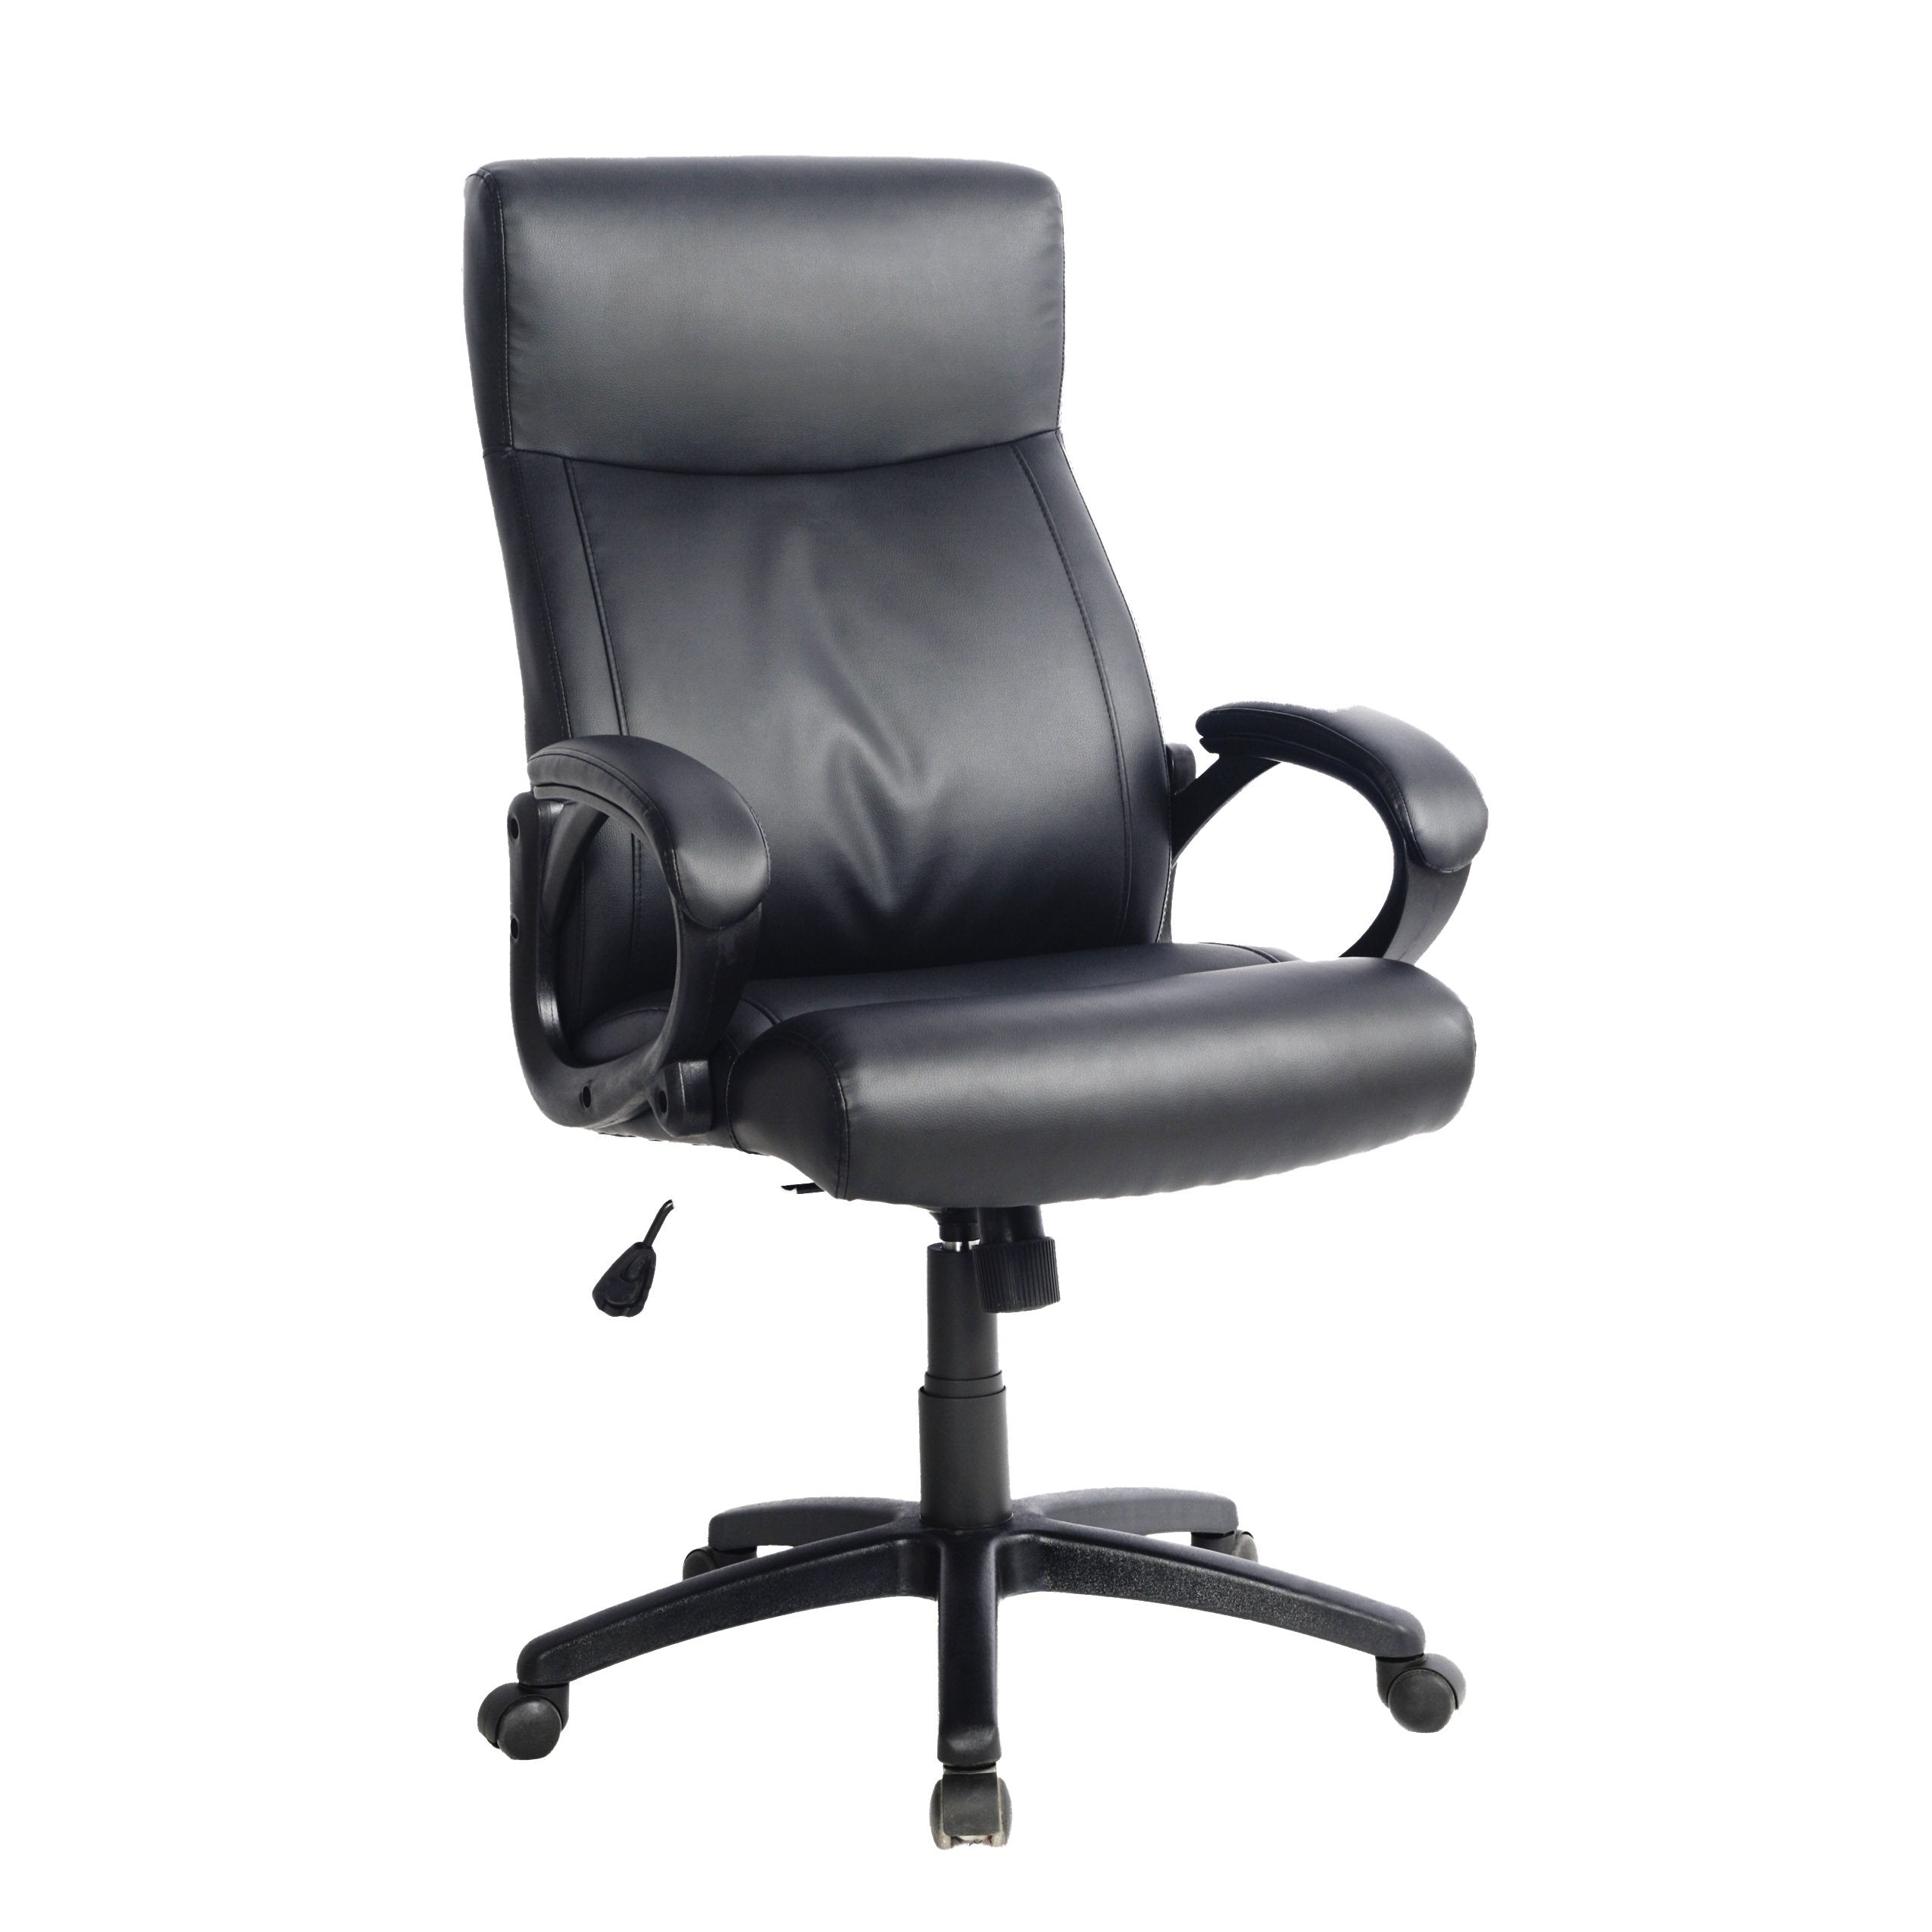 Office Furniture Us: Black Leatherette Managerial Office Chair